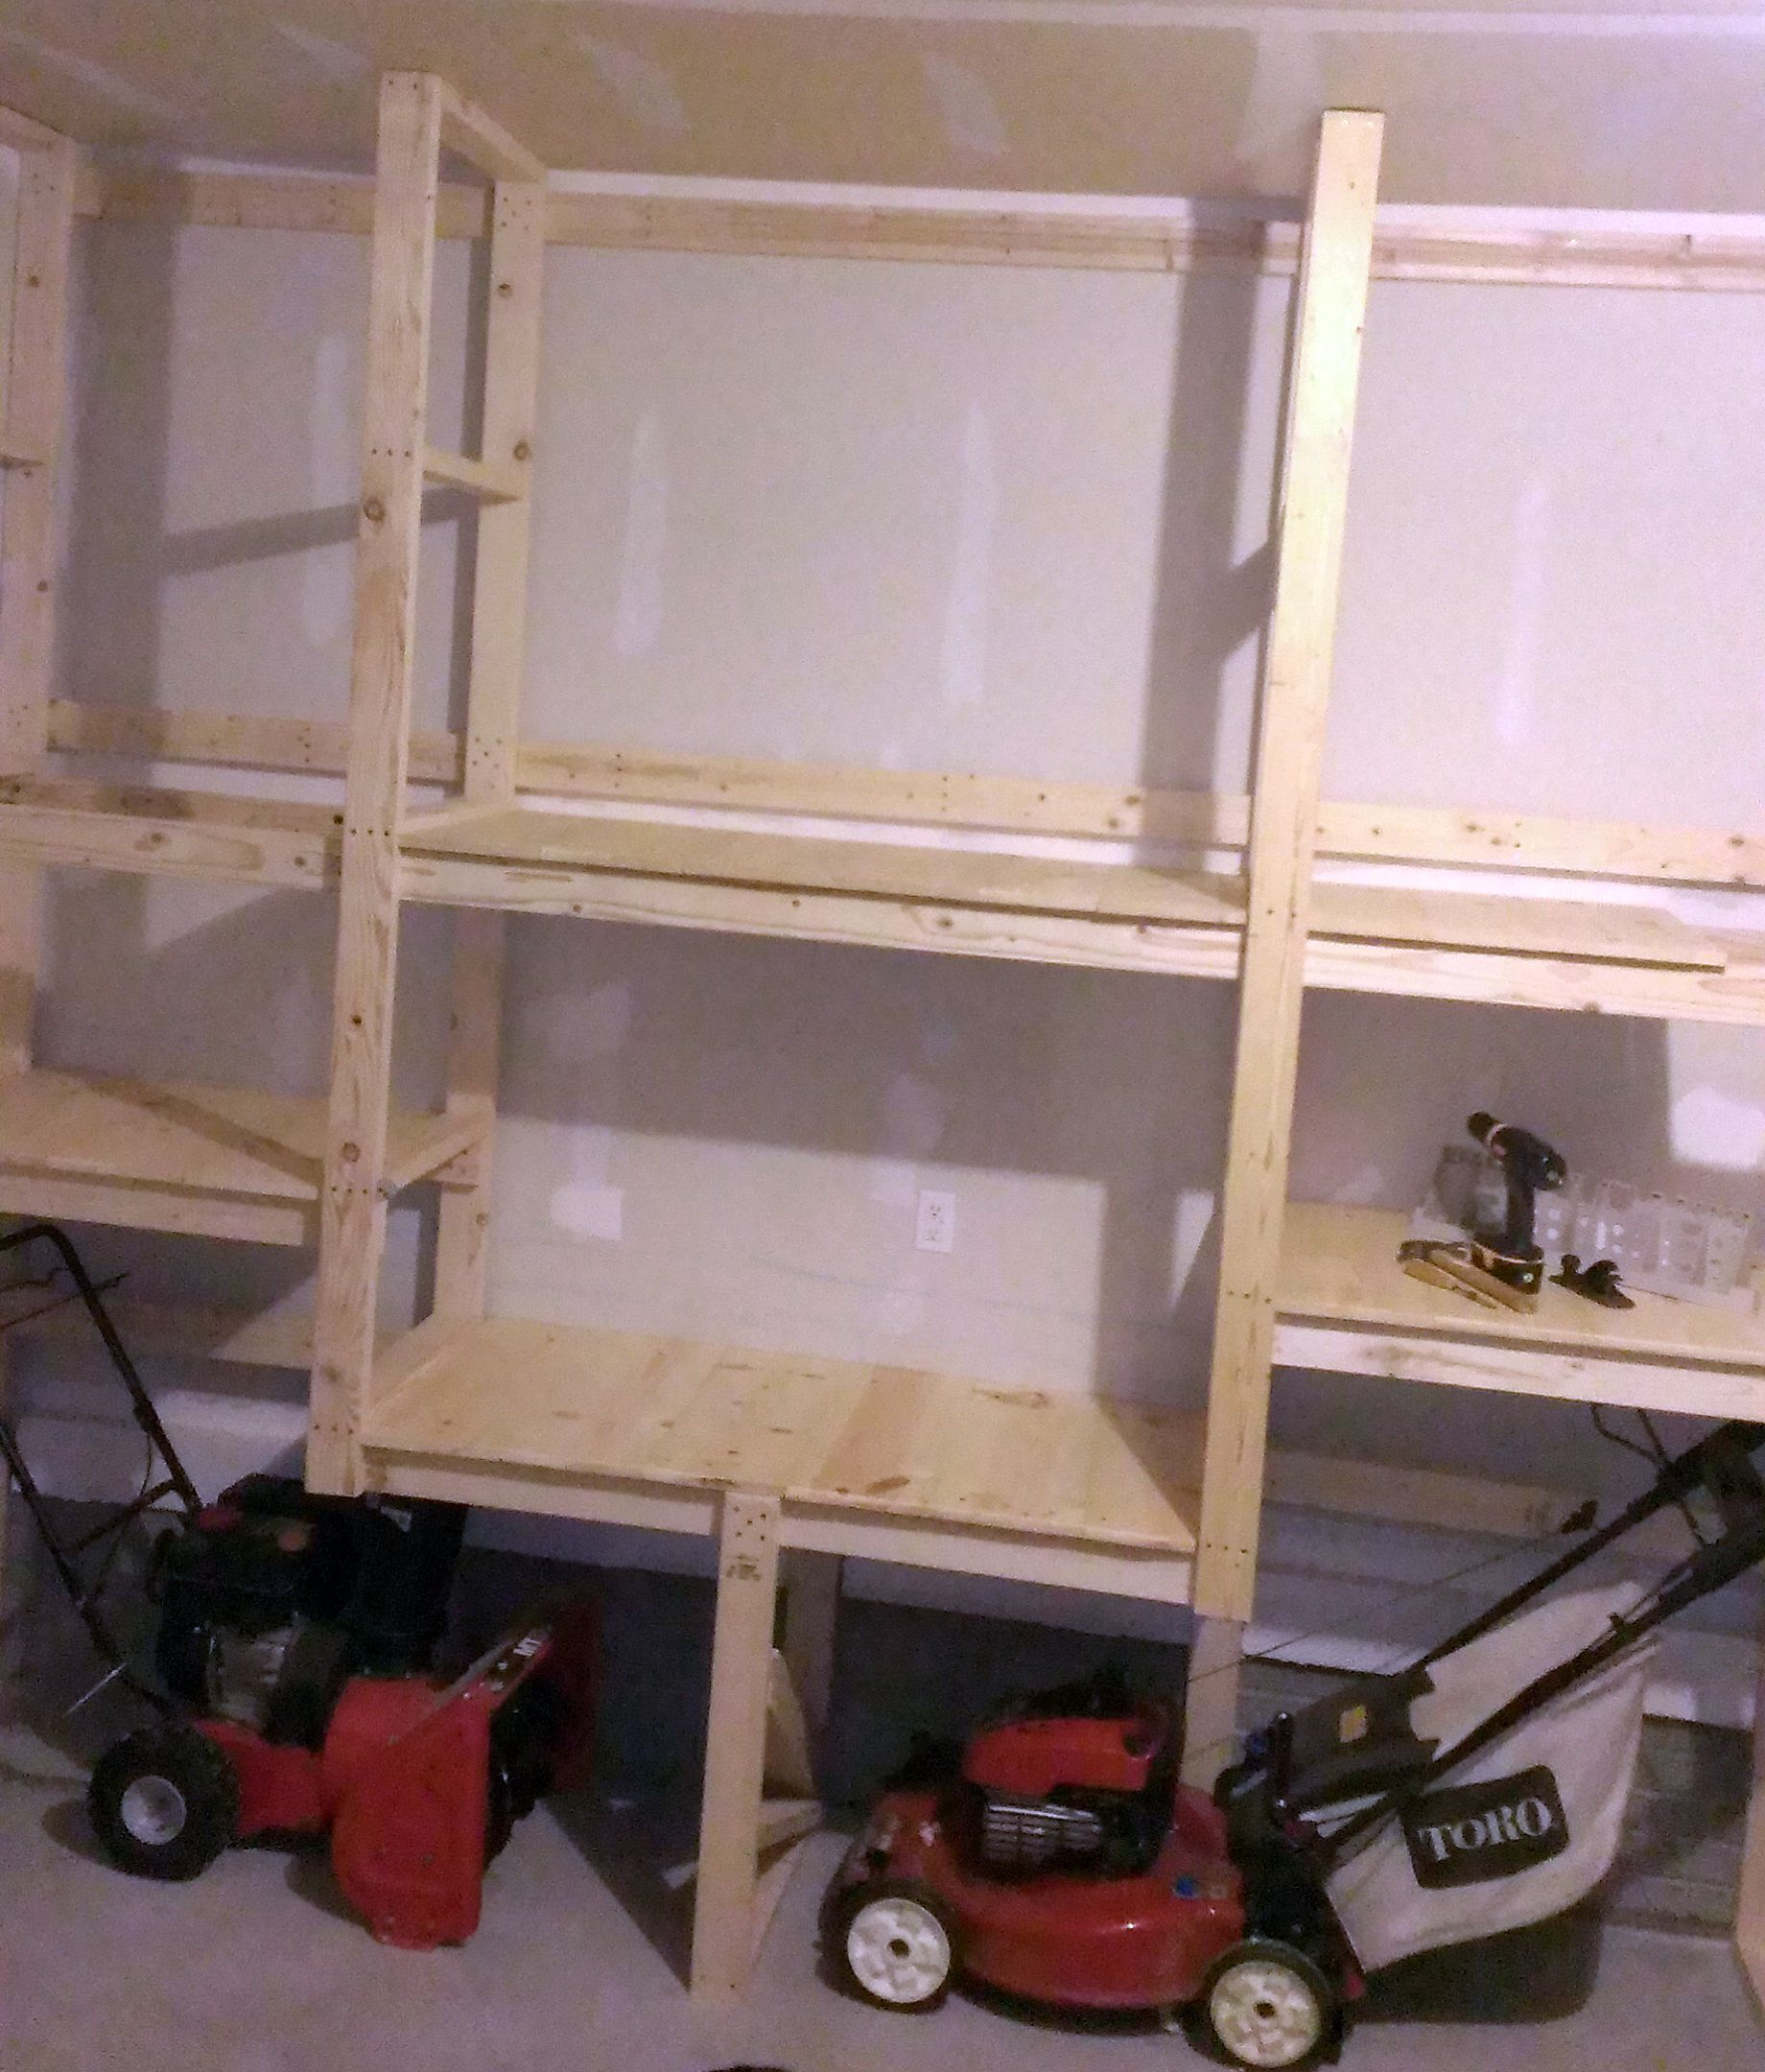 Phase 6 For Riding Lawn Mower Storage Ideas, Image Source: Pinterest.co.uk